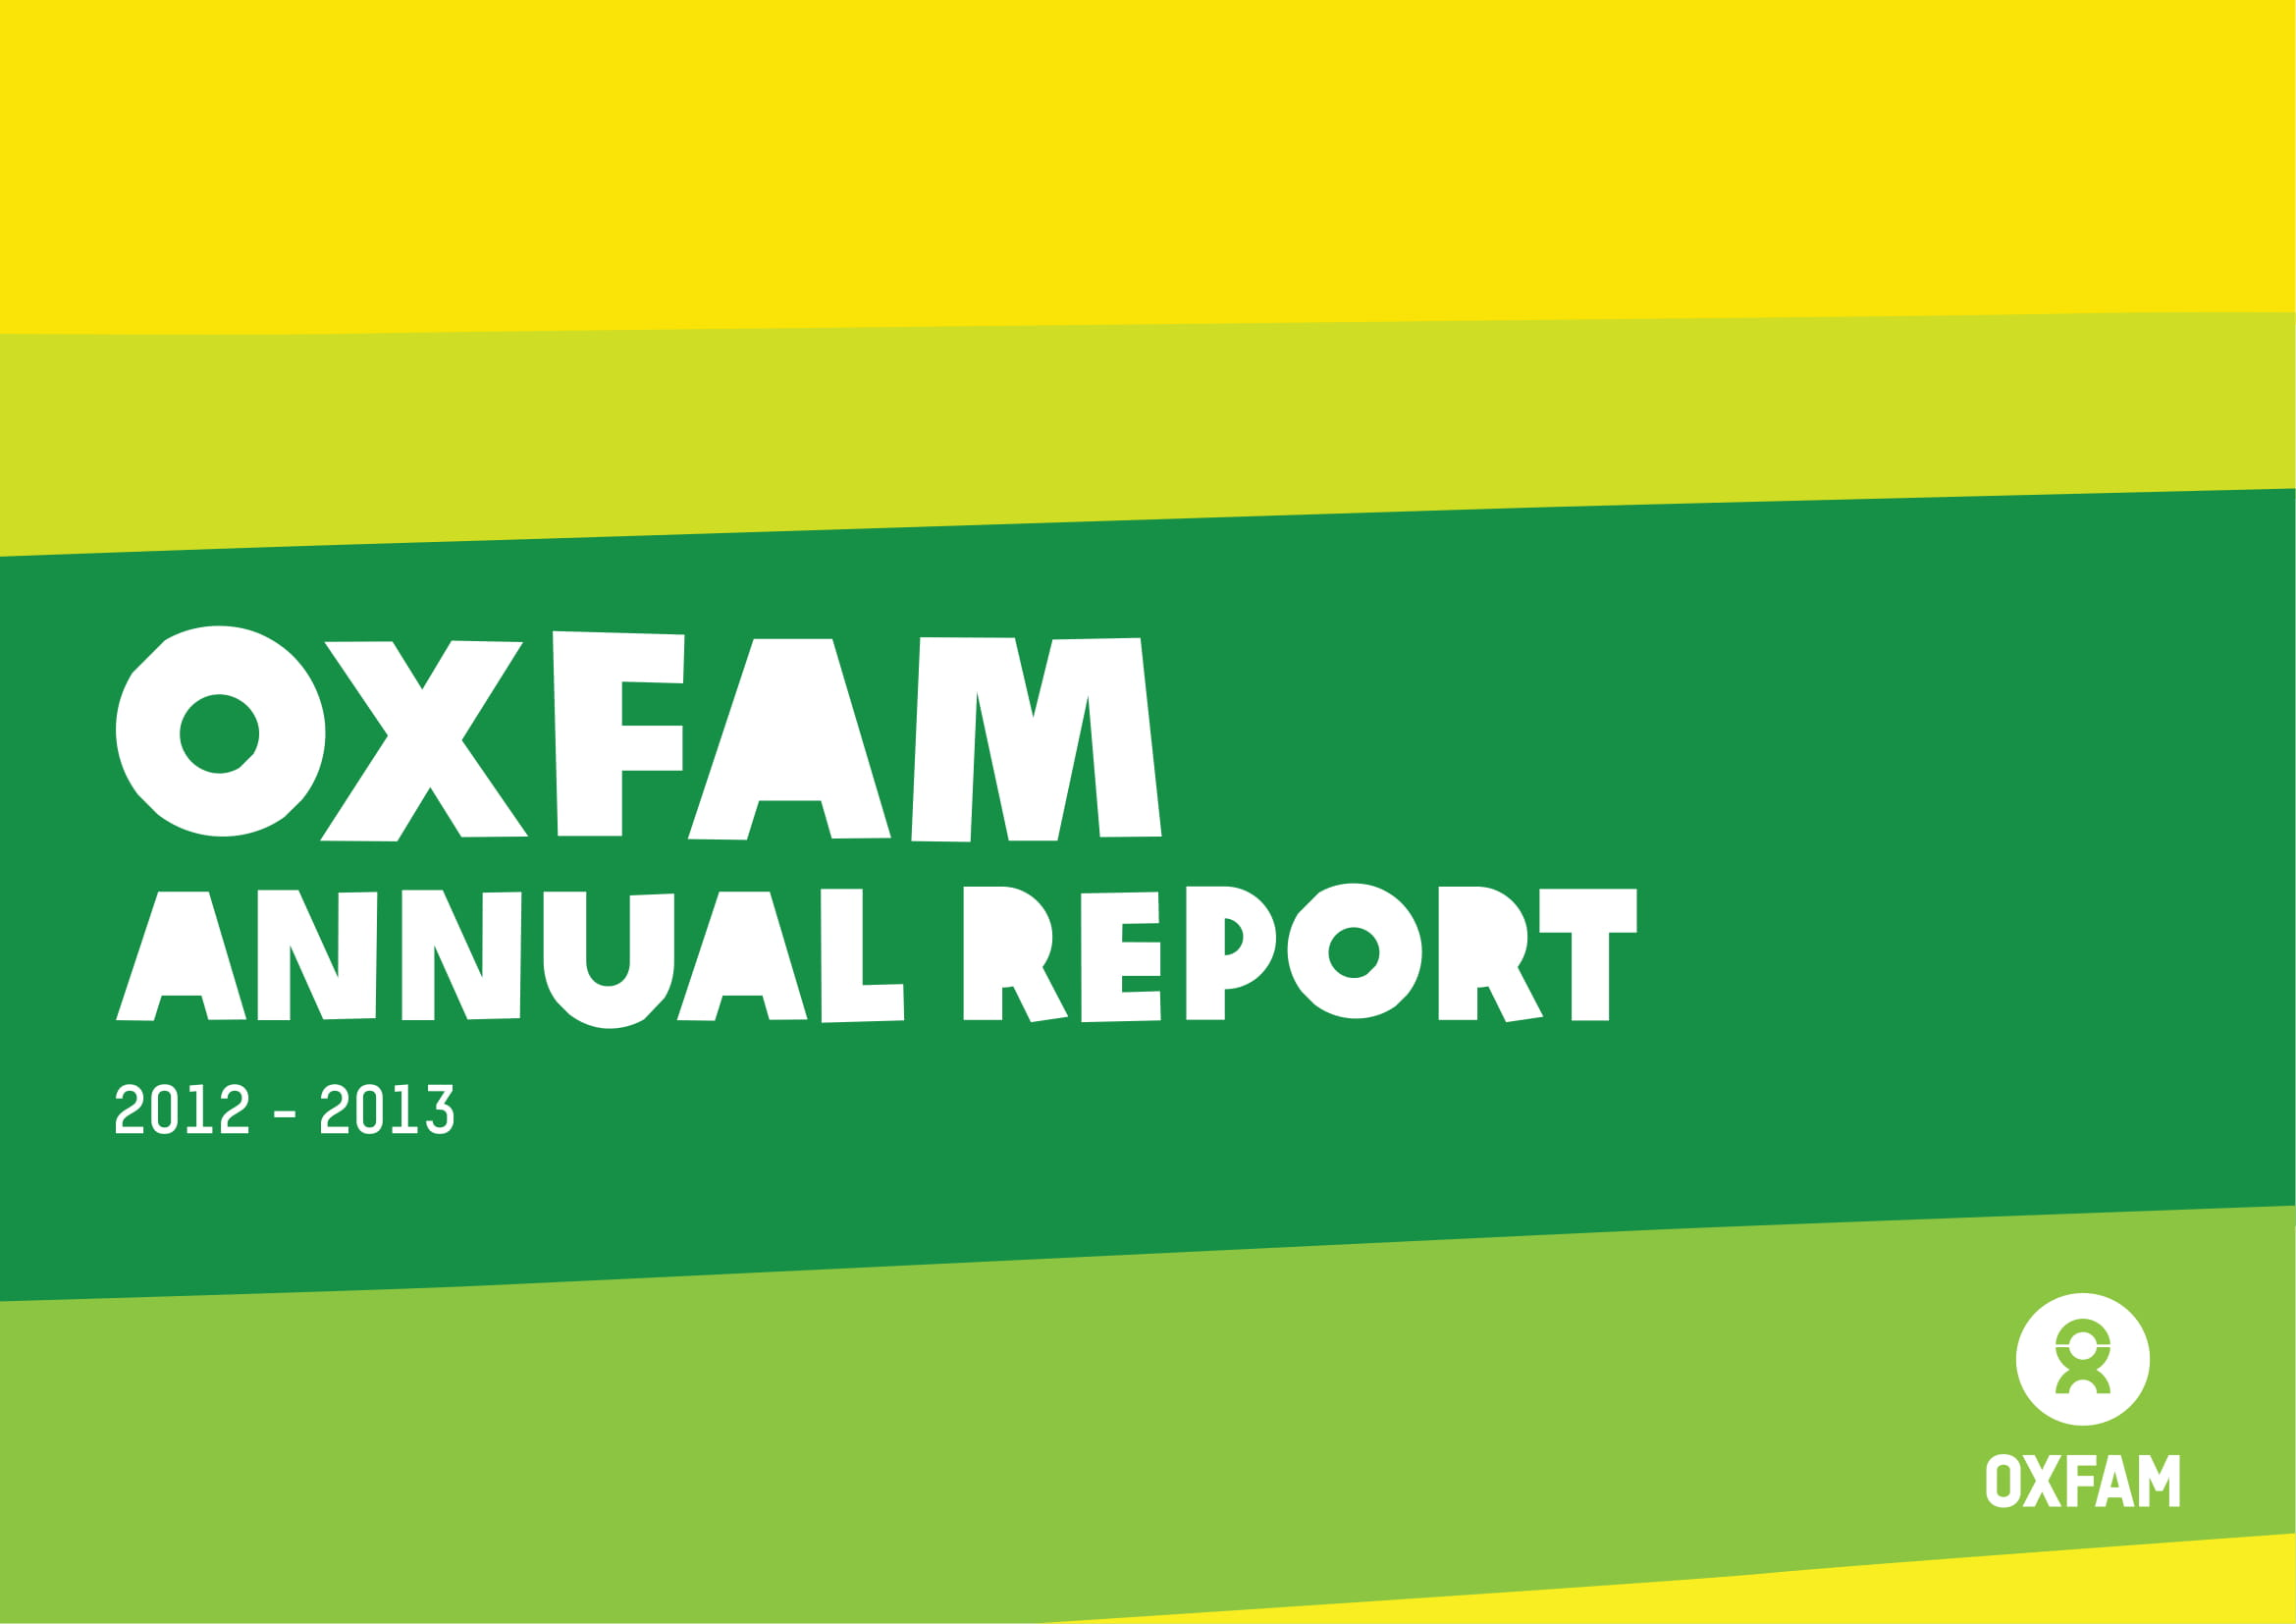 oxfam ngo annual report example